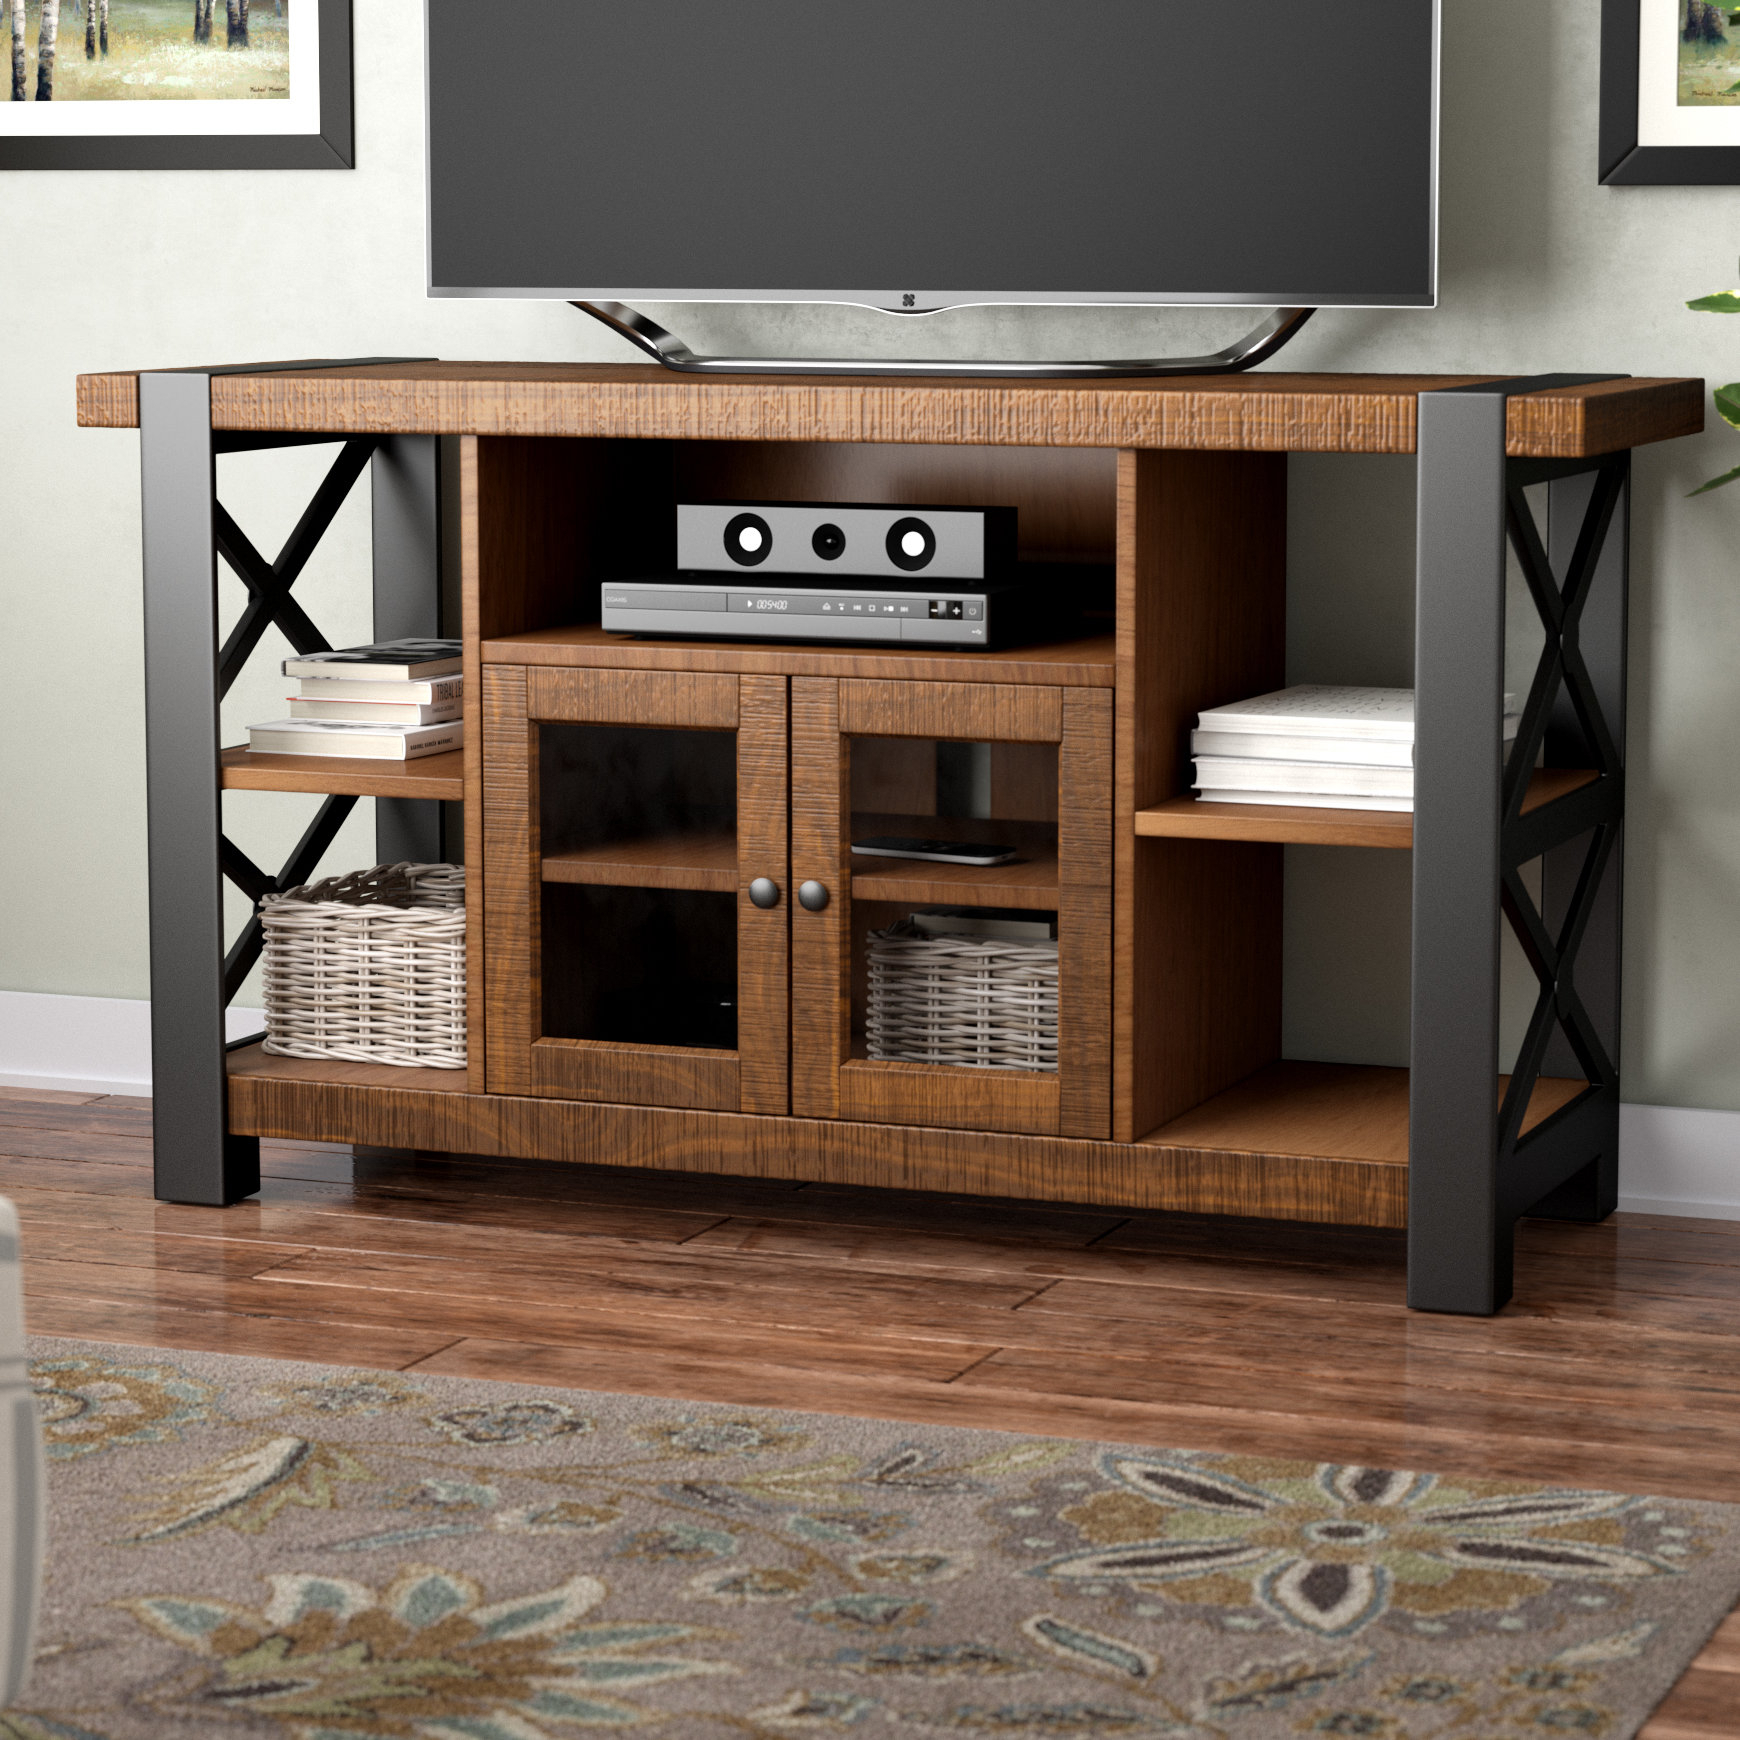 Tv Stands & Entertainment Centers You'll Love | Wayfair With Sinclair Blue 64 Inch Tv Stands (View 29 of 30)